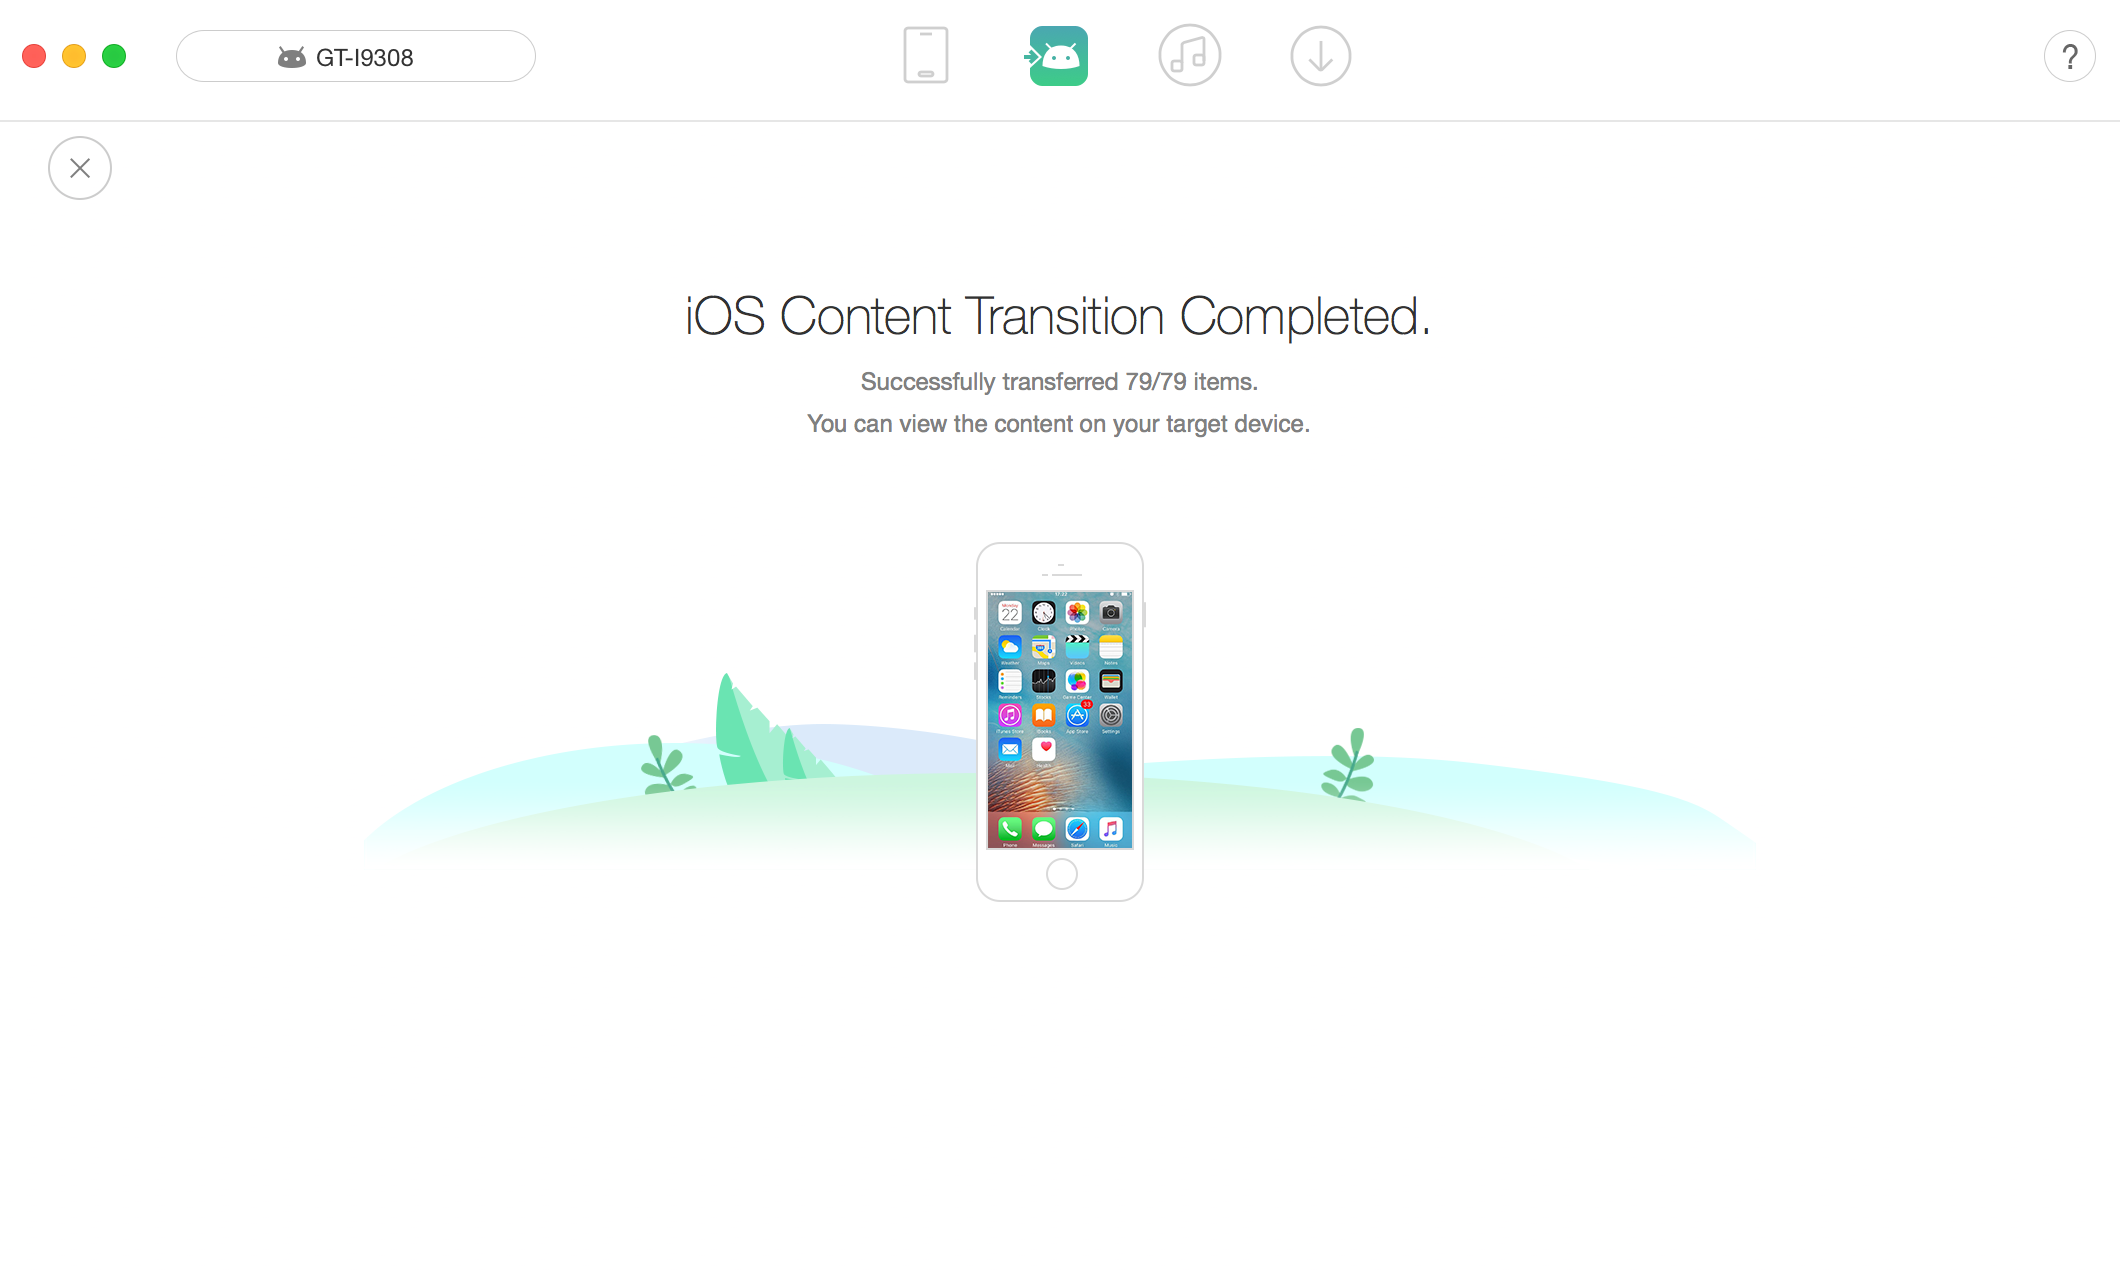 iOS data successfully transferred to Samsung